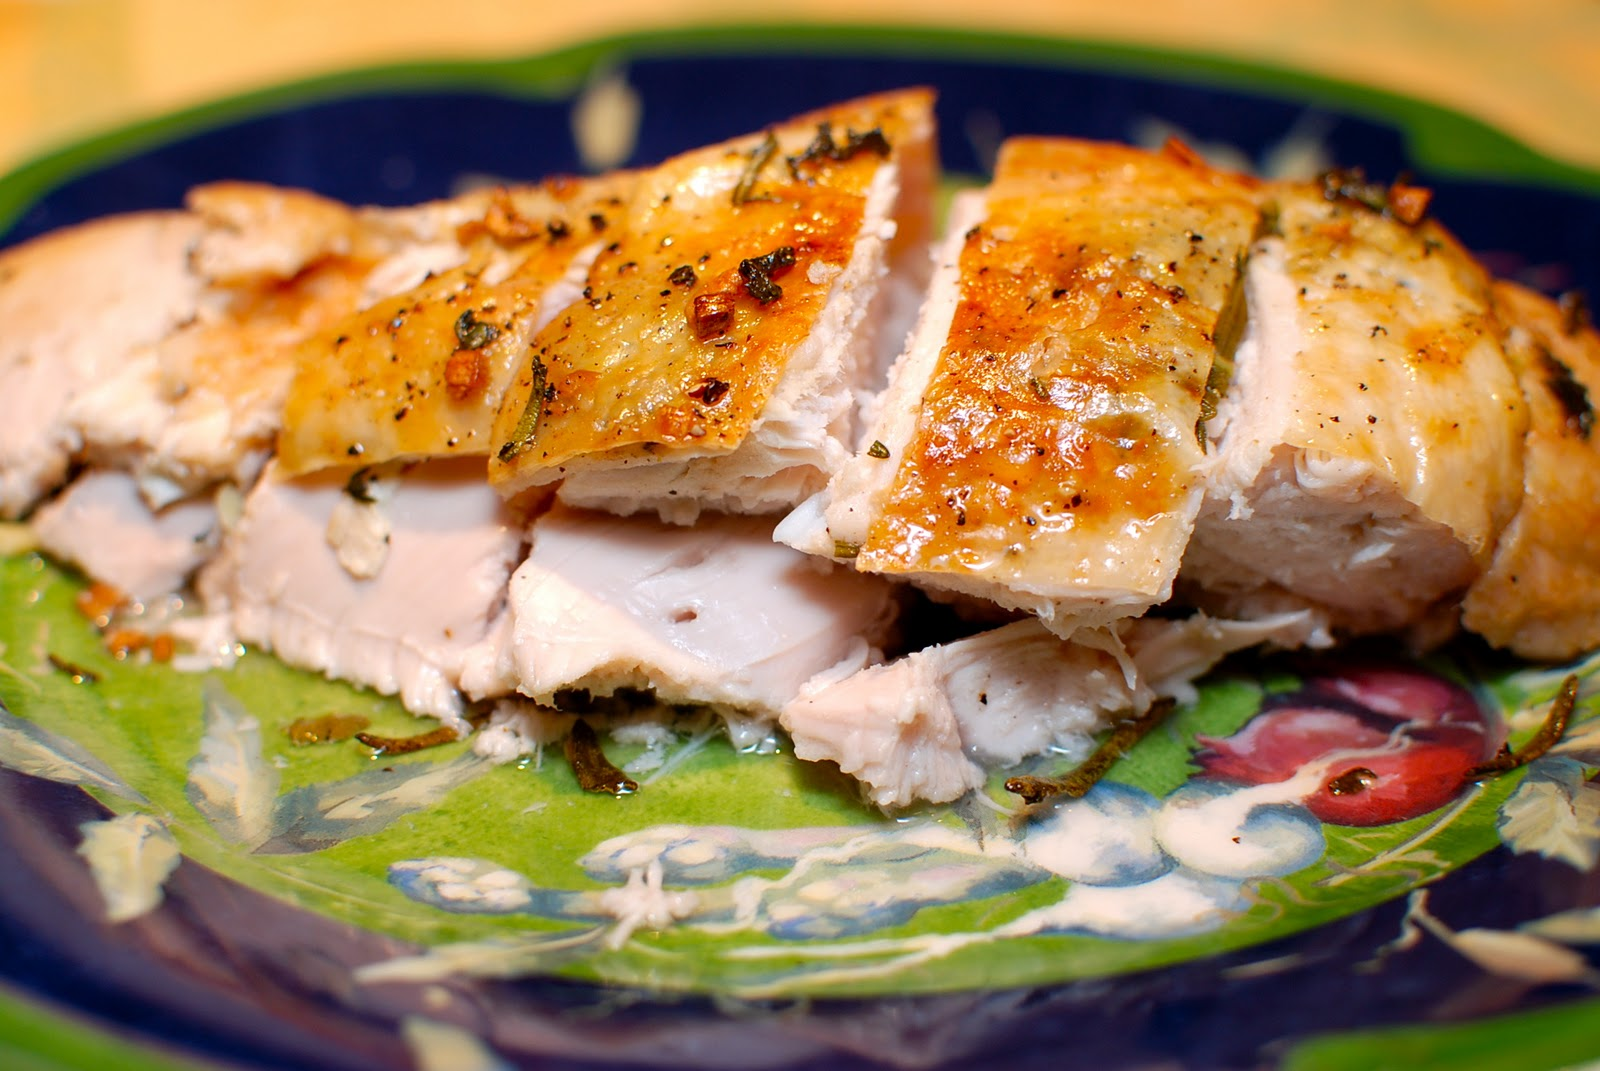 ... Turkey Two Ways Part I..'Turkey for Two: Herb-Roasted Turkey Breast